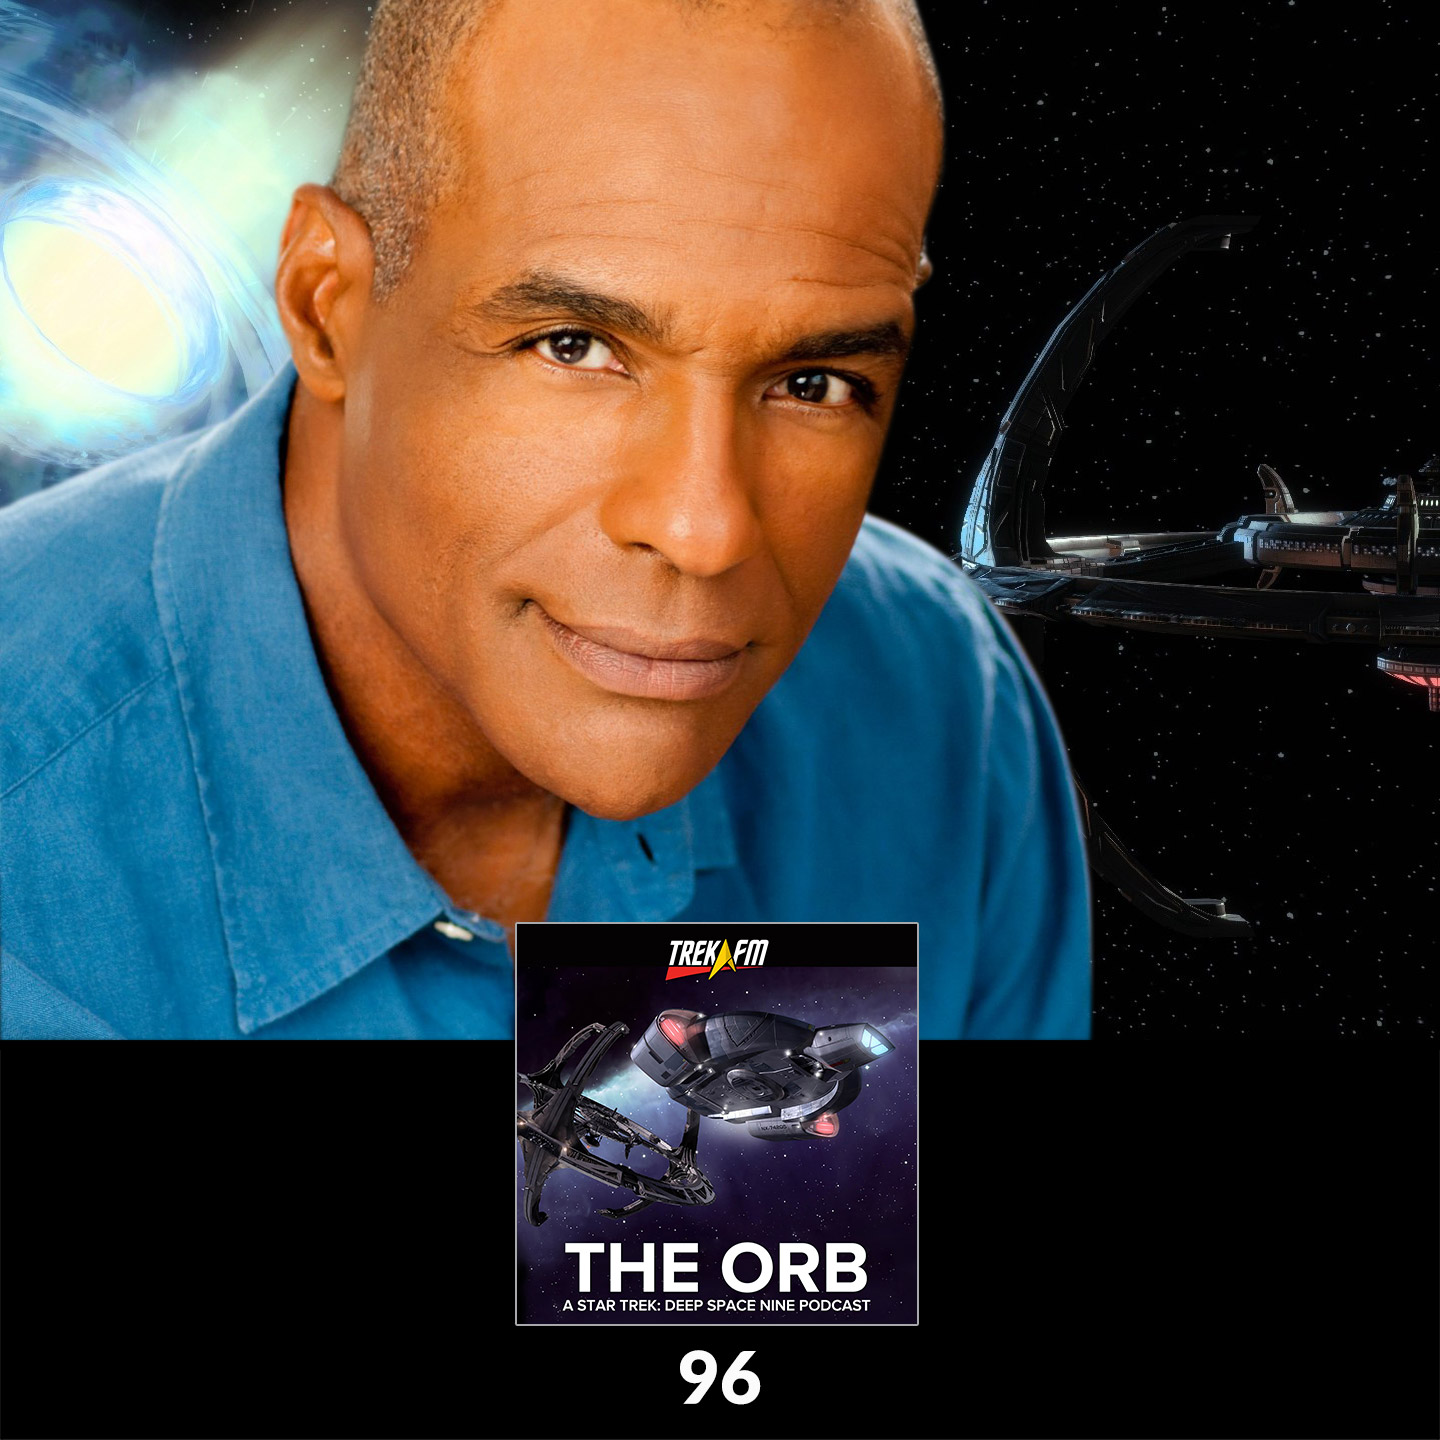 The Orb 96: Putting the Worf Back On